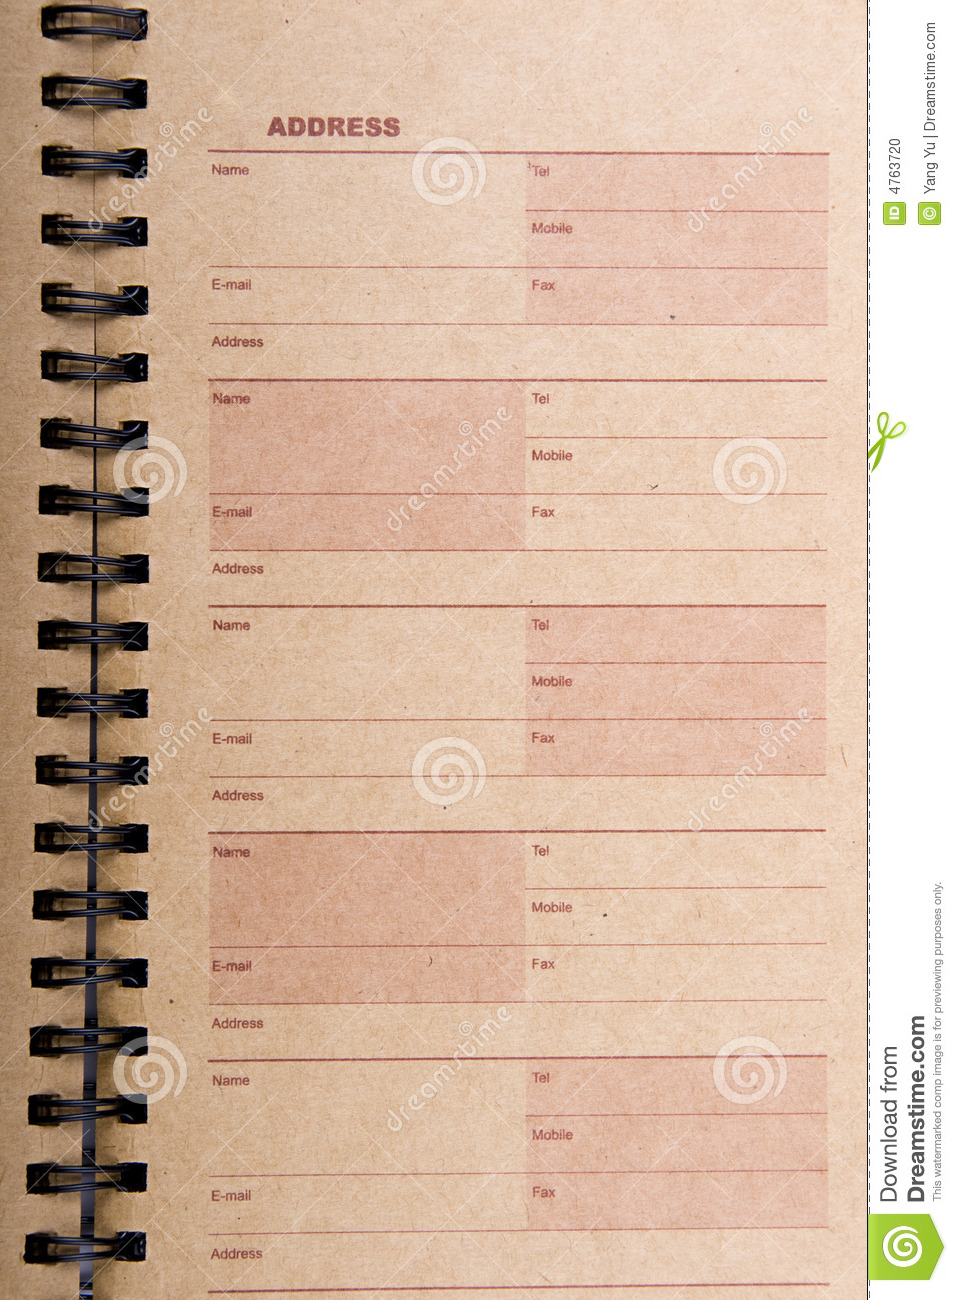 image relating to Printable Address Book Pages referred to as Blank Include E book Site inventory image. Impression of listing